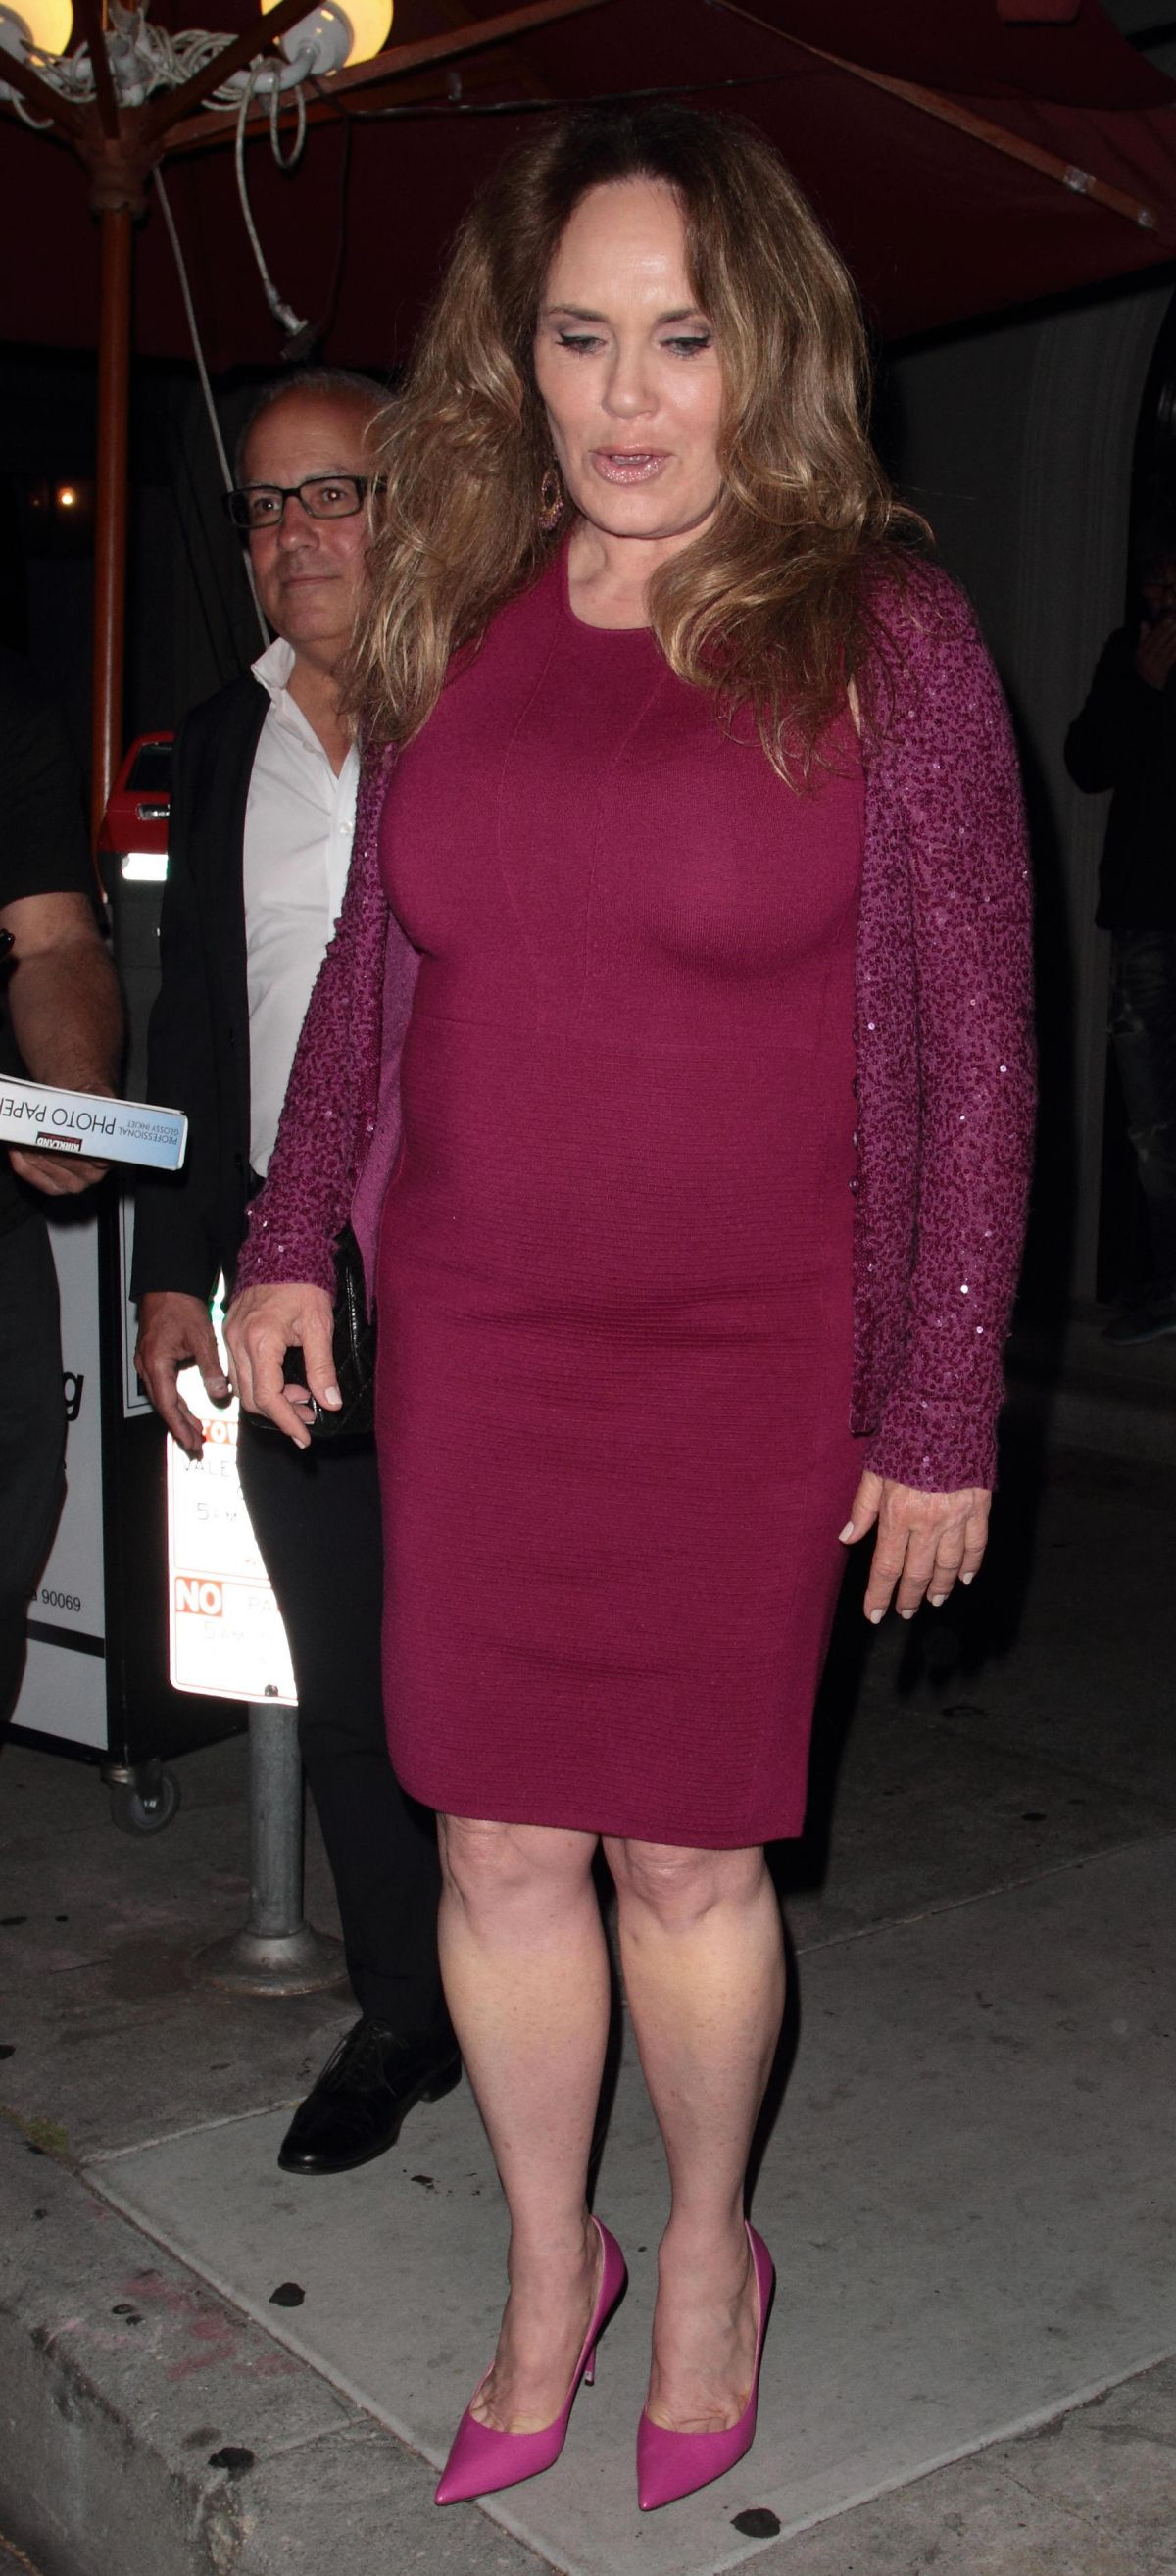 CATHERINE BACH at Craig's Restaurant in West Hollywood 05